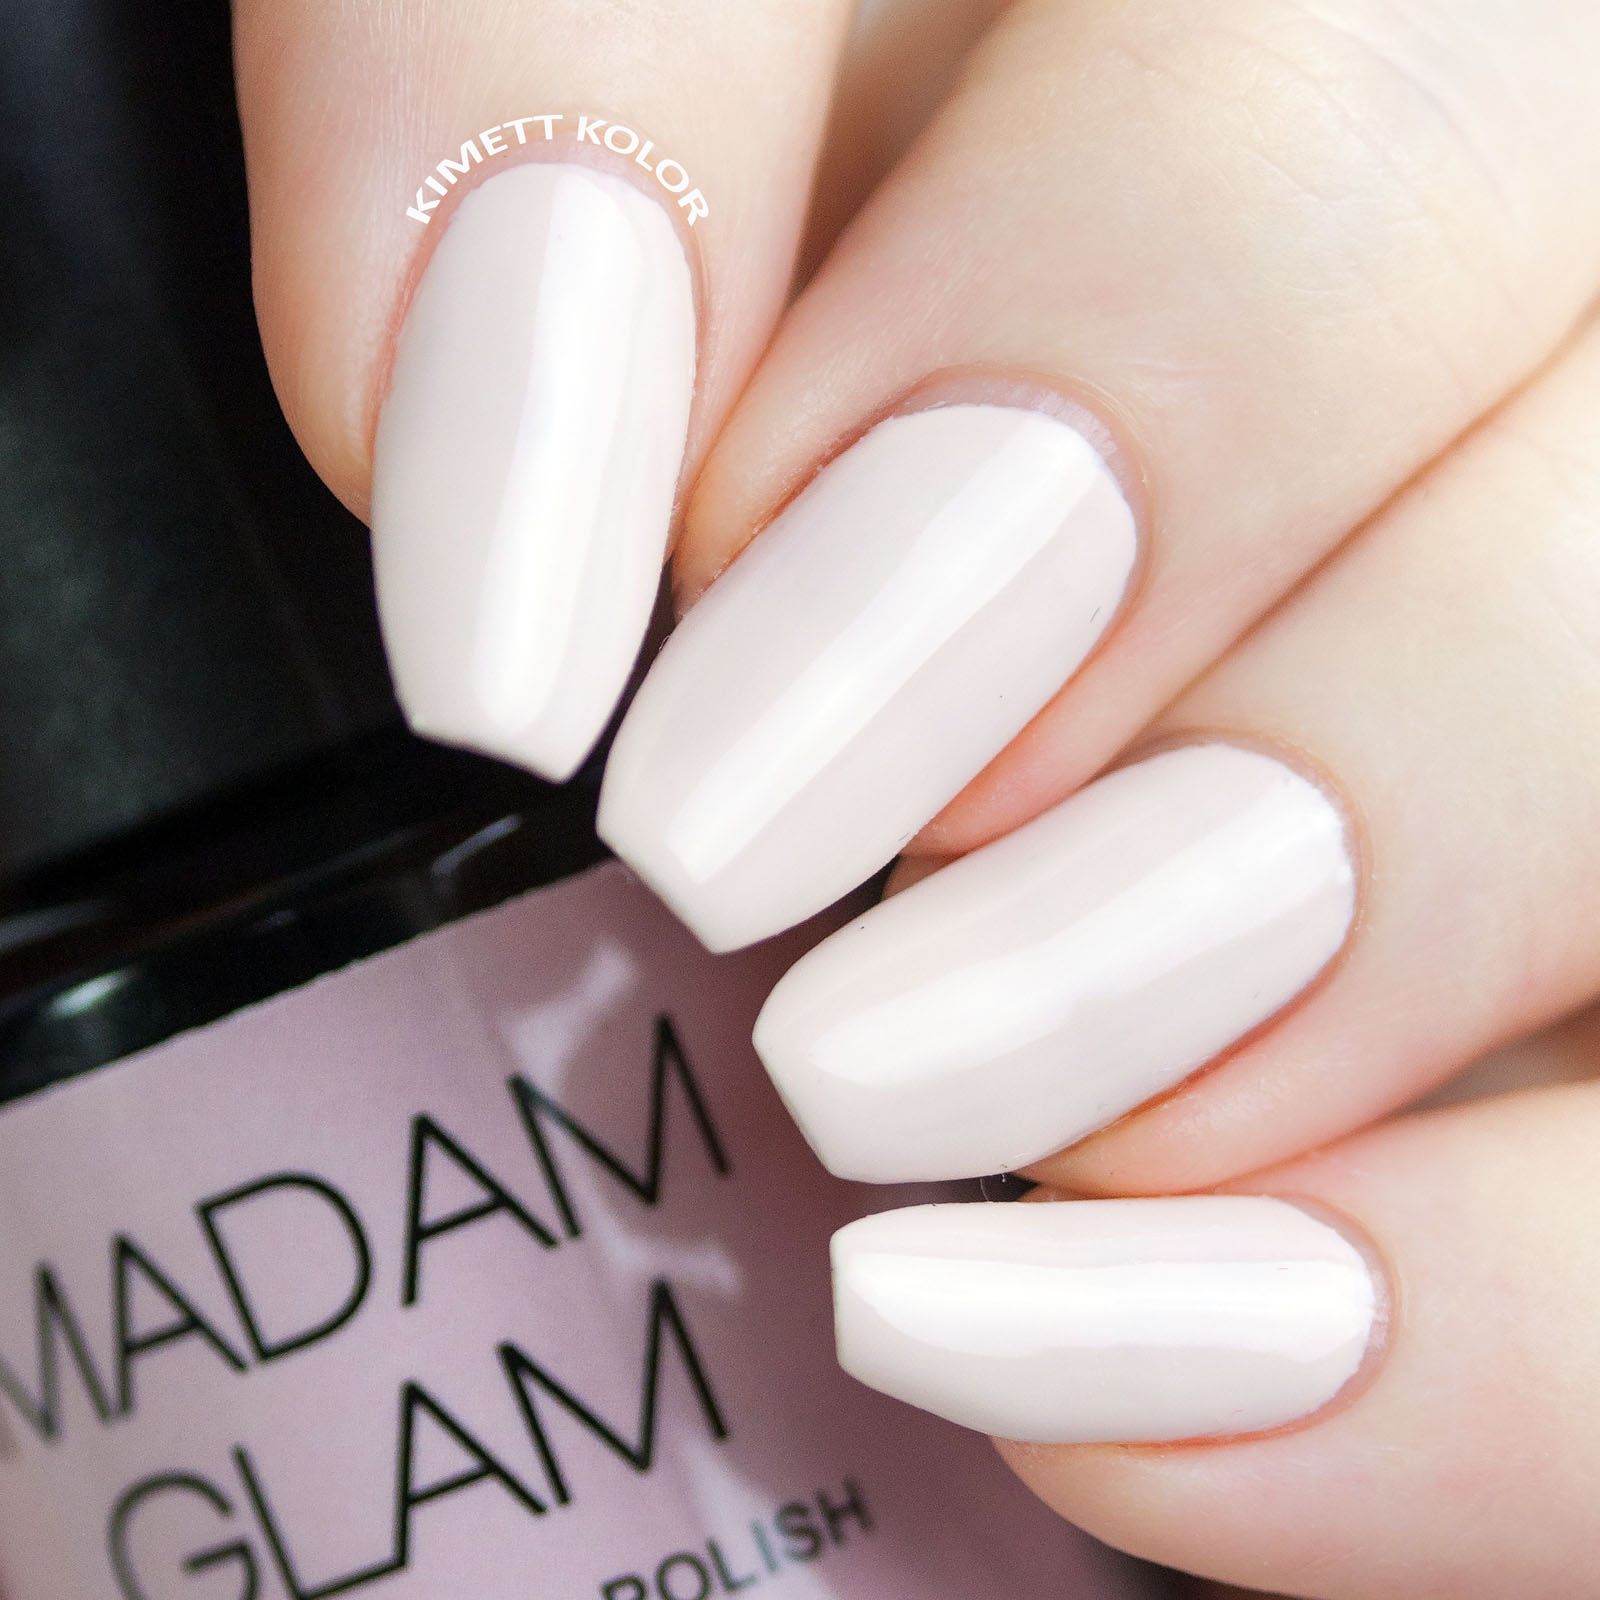 Kimett Kolor Swatch of Madam Glam Ballerina Gel